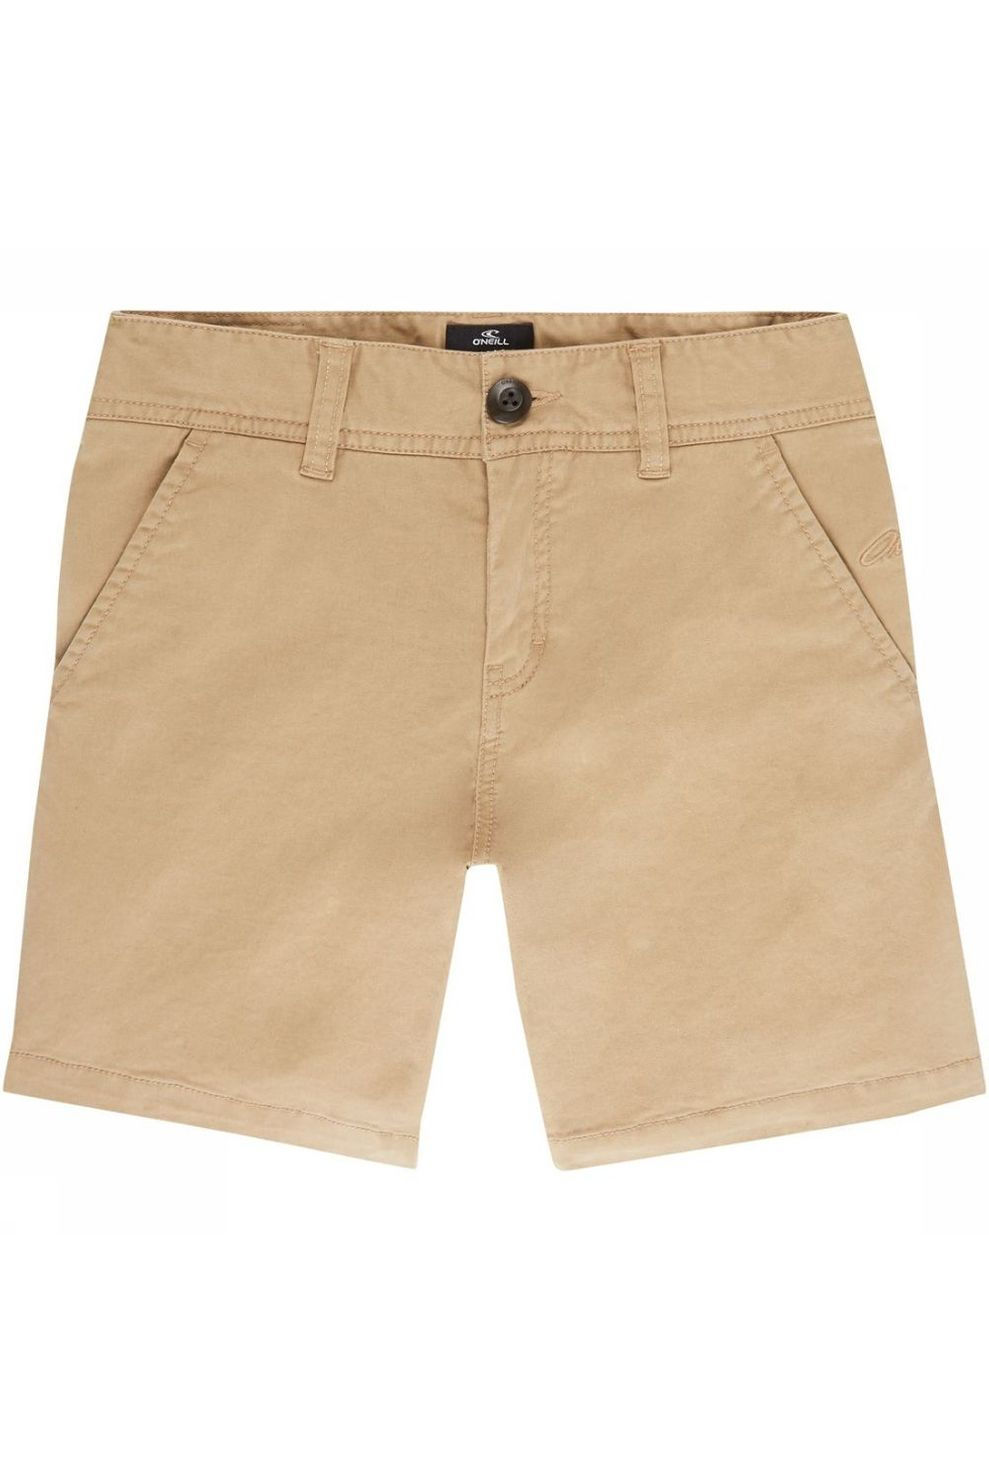 O'Neill Short Lb Friday Night Chino voor jongens - Bruin - Maten: 140, 152, 164, 176